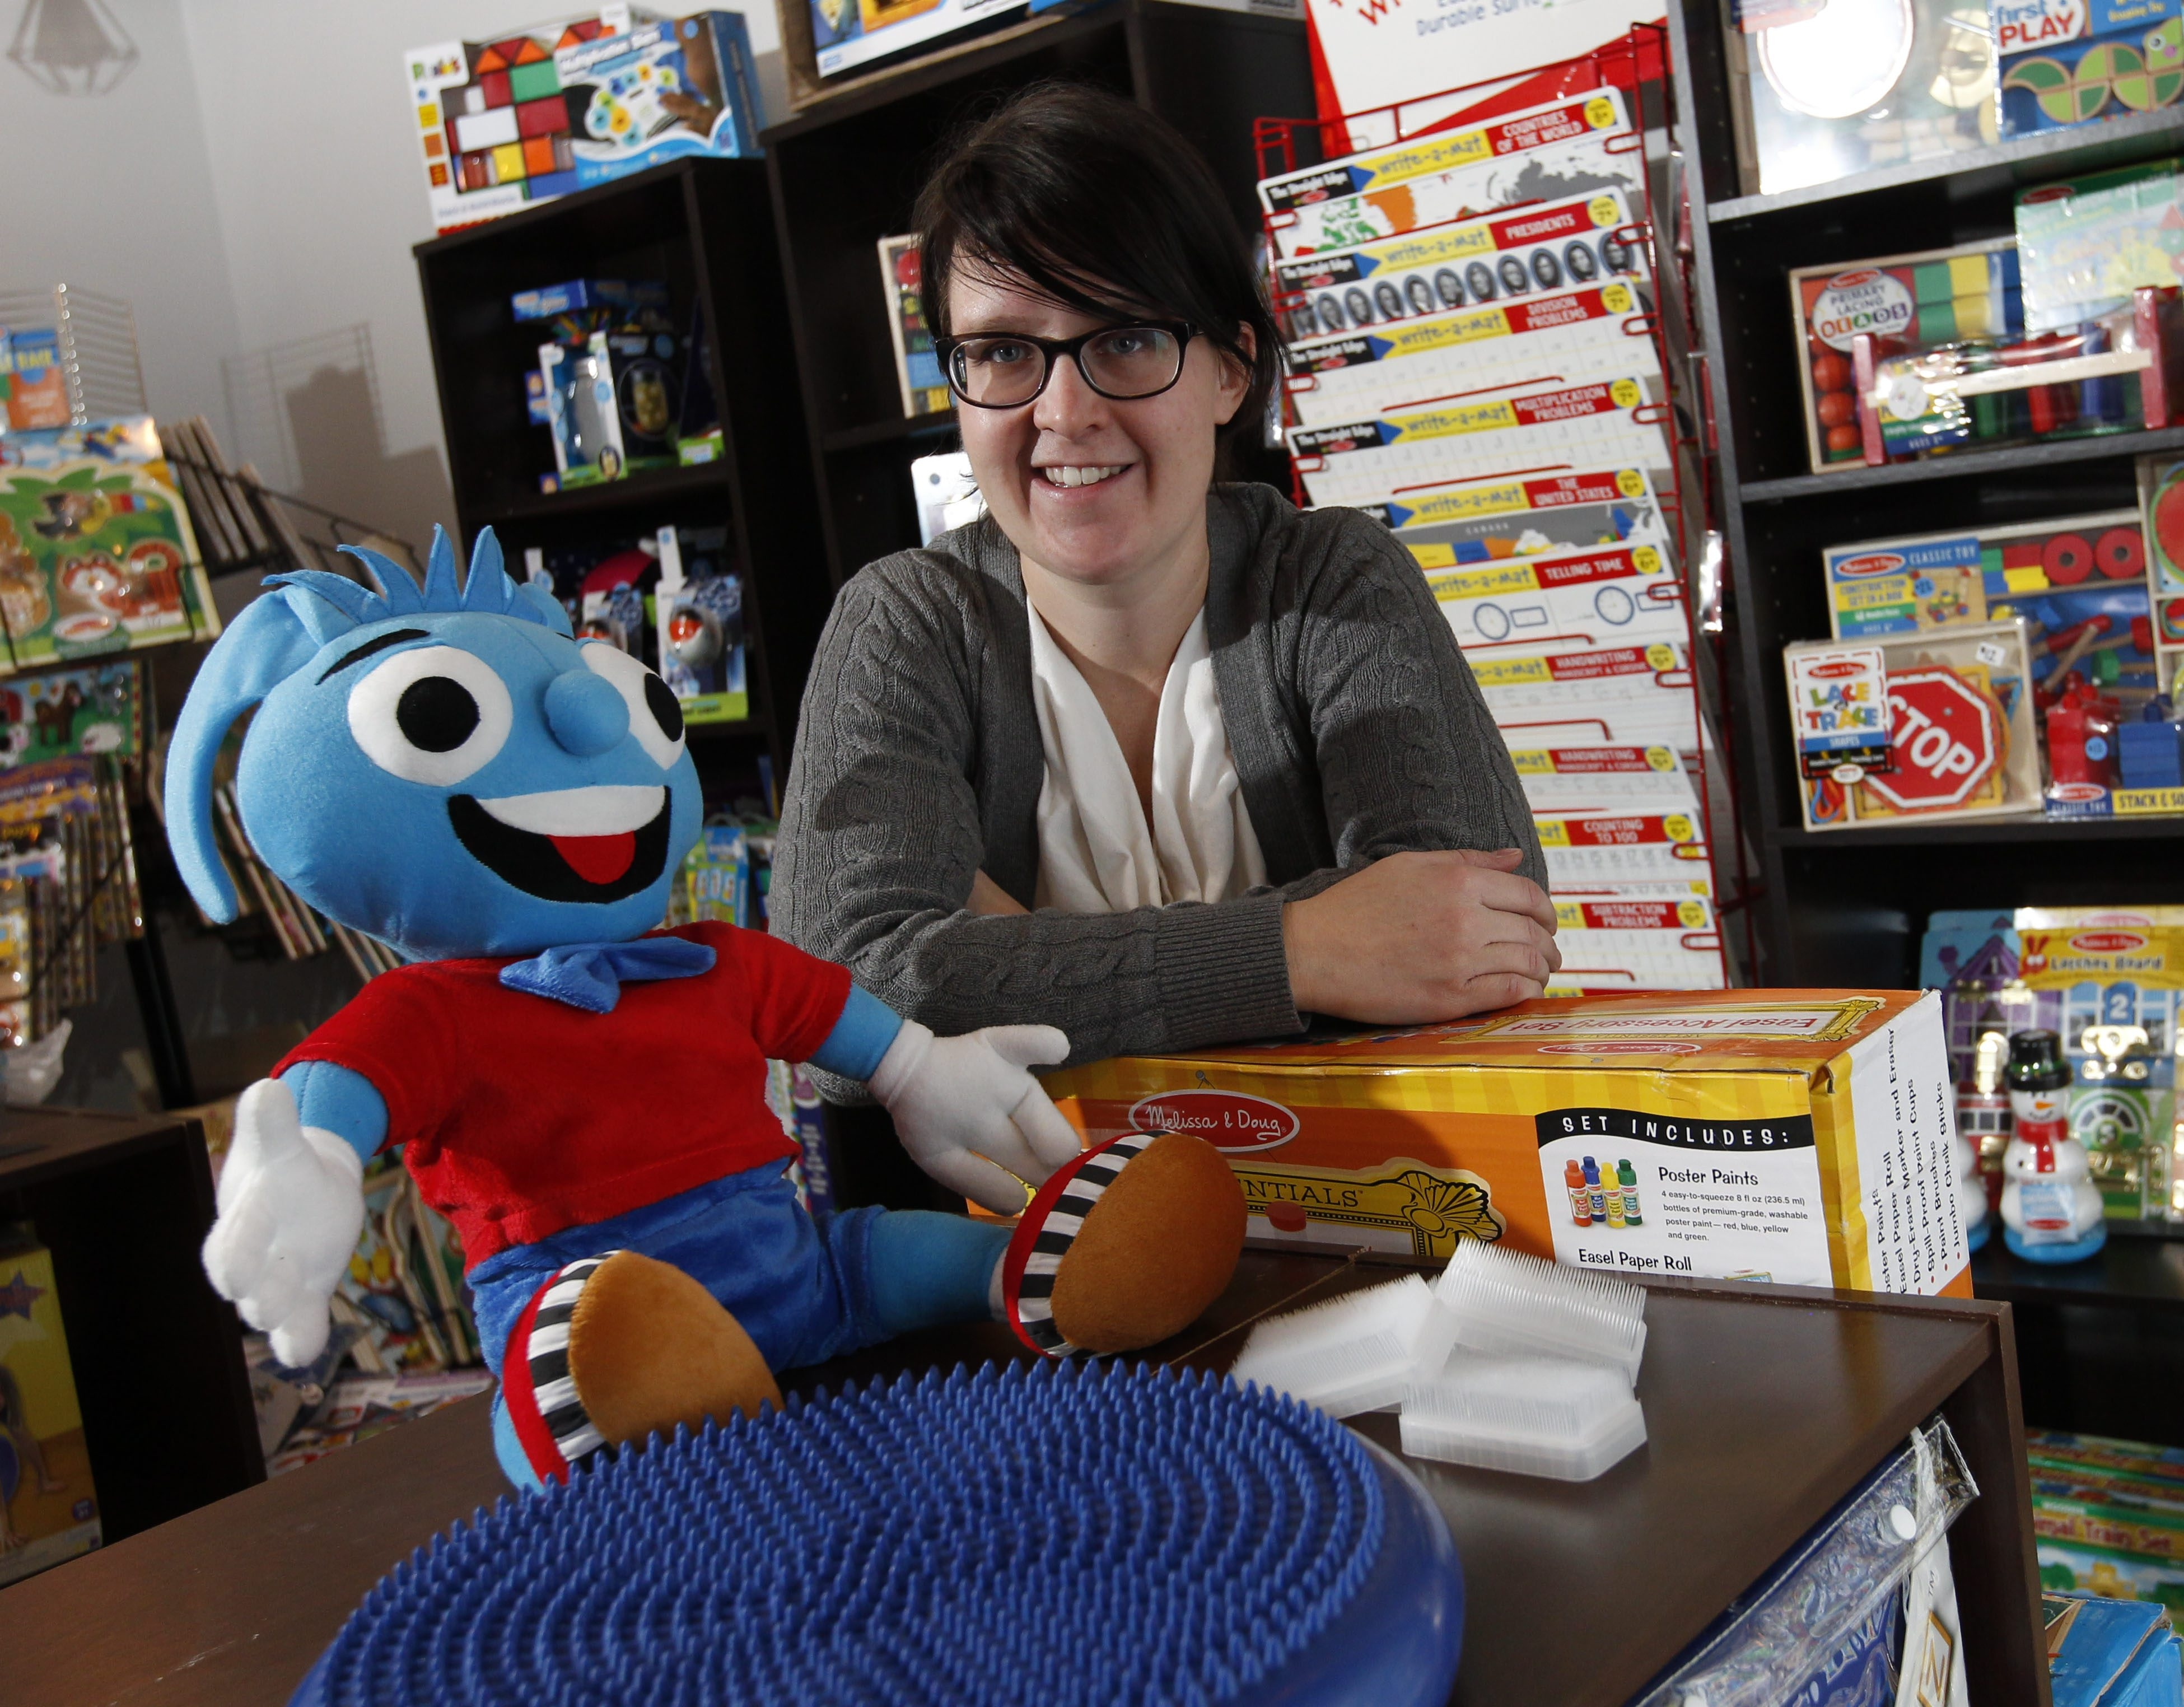 Makes Sense is a relatively new store which specializes in products for children and adults with autism and other special needs.  Owner Stacey Creighton just moved to the store to Main St. in Williamsville.  She's photographed with the doll Heavy Herbert, a dynamic seat cushion and sensory brushes, Wednesday, Jan. 21, 2015.  (Sharon Cantillon/Buffalo News)